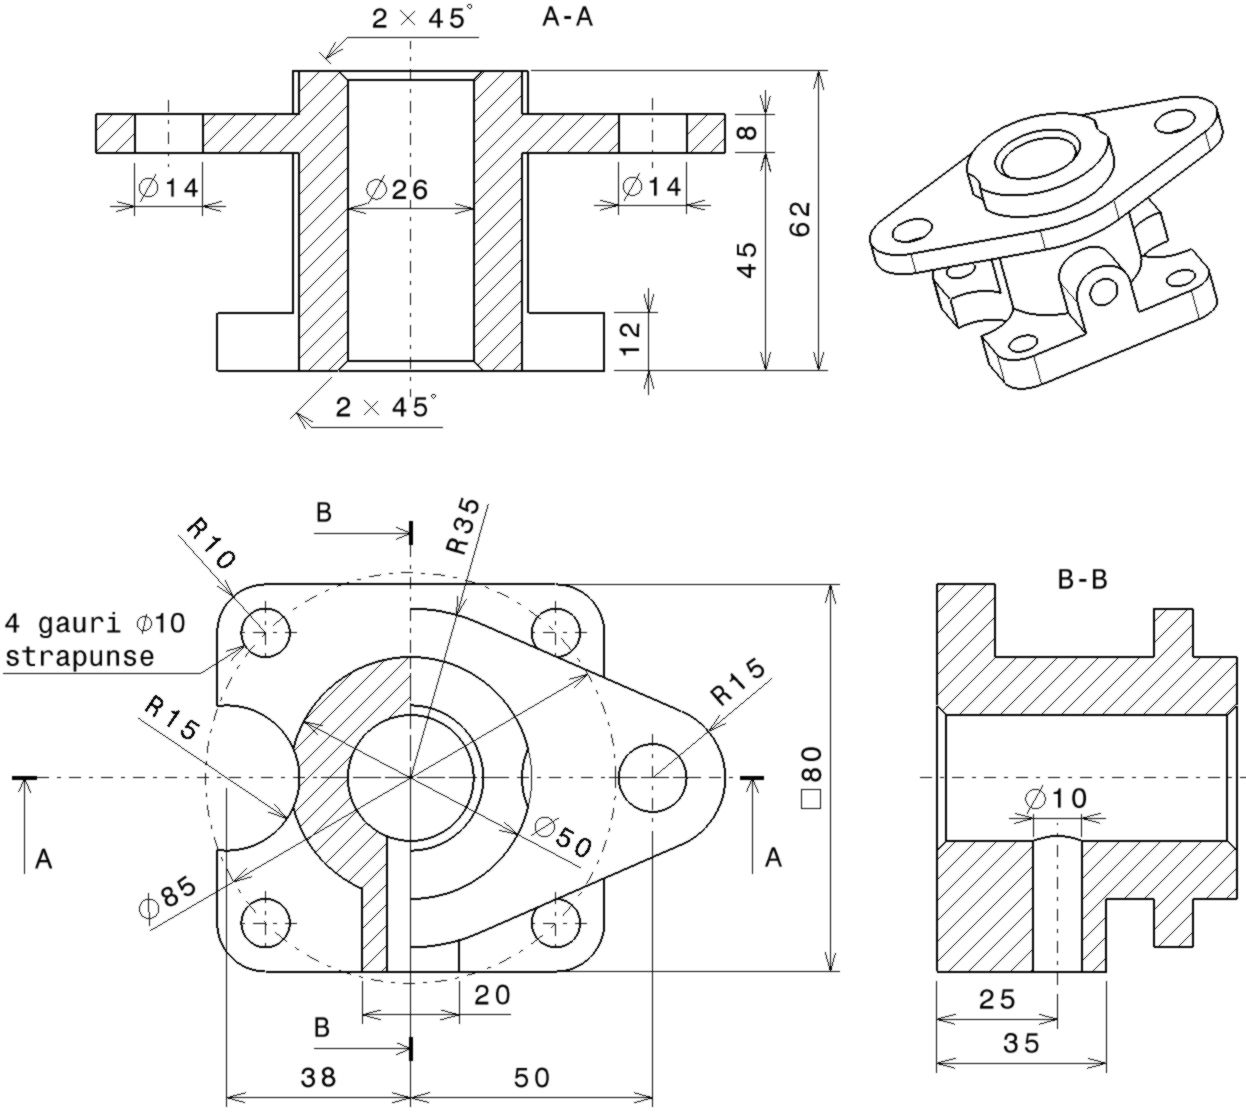 How To Create A Mechanical Part Using Catia Part Design In